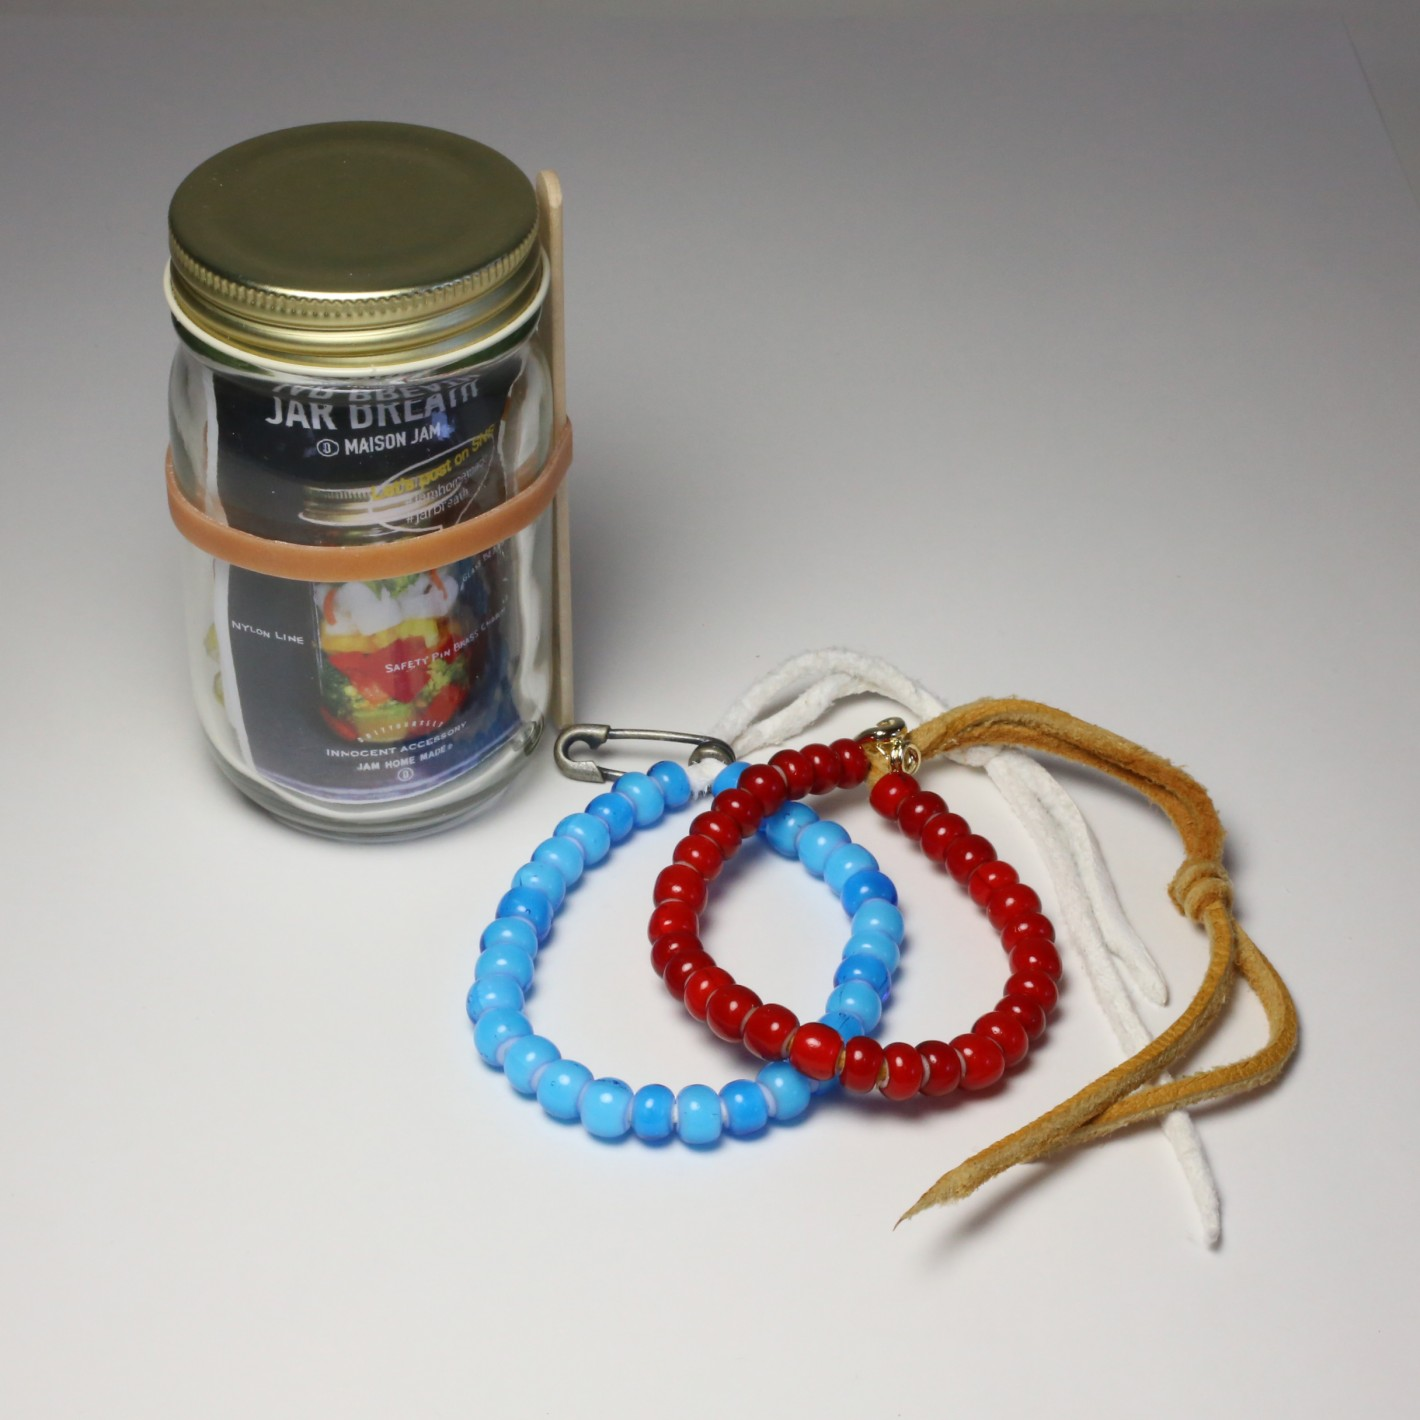 JAR_BREATH_beads